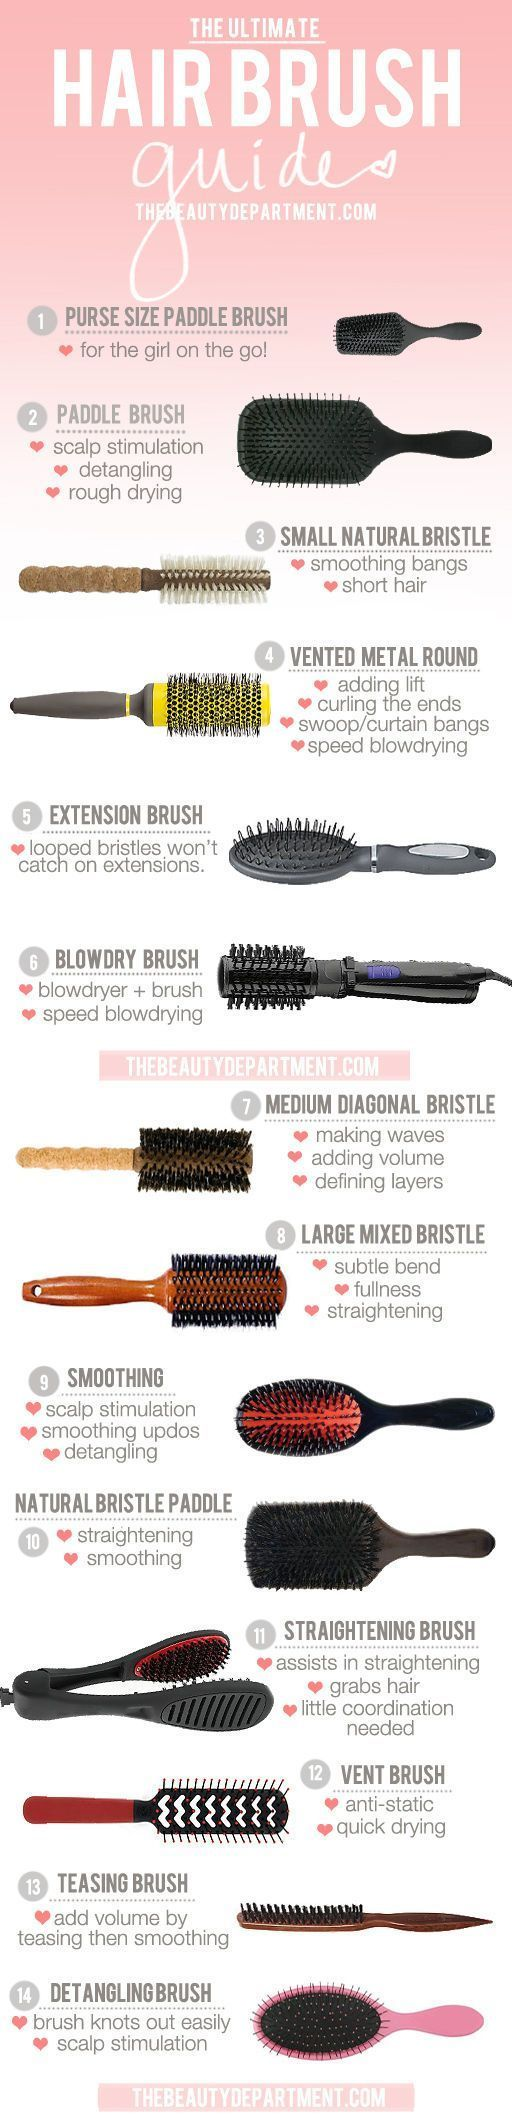 Top Hair straightener brands 2015|Find The Best